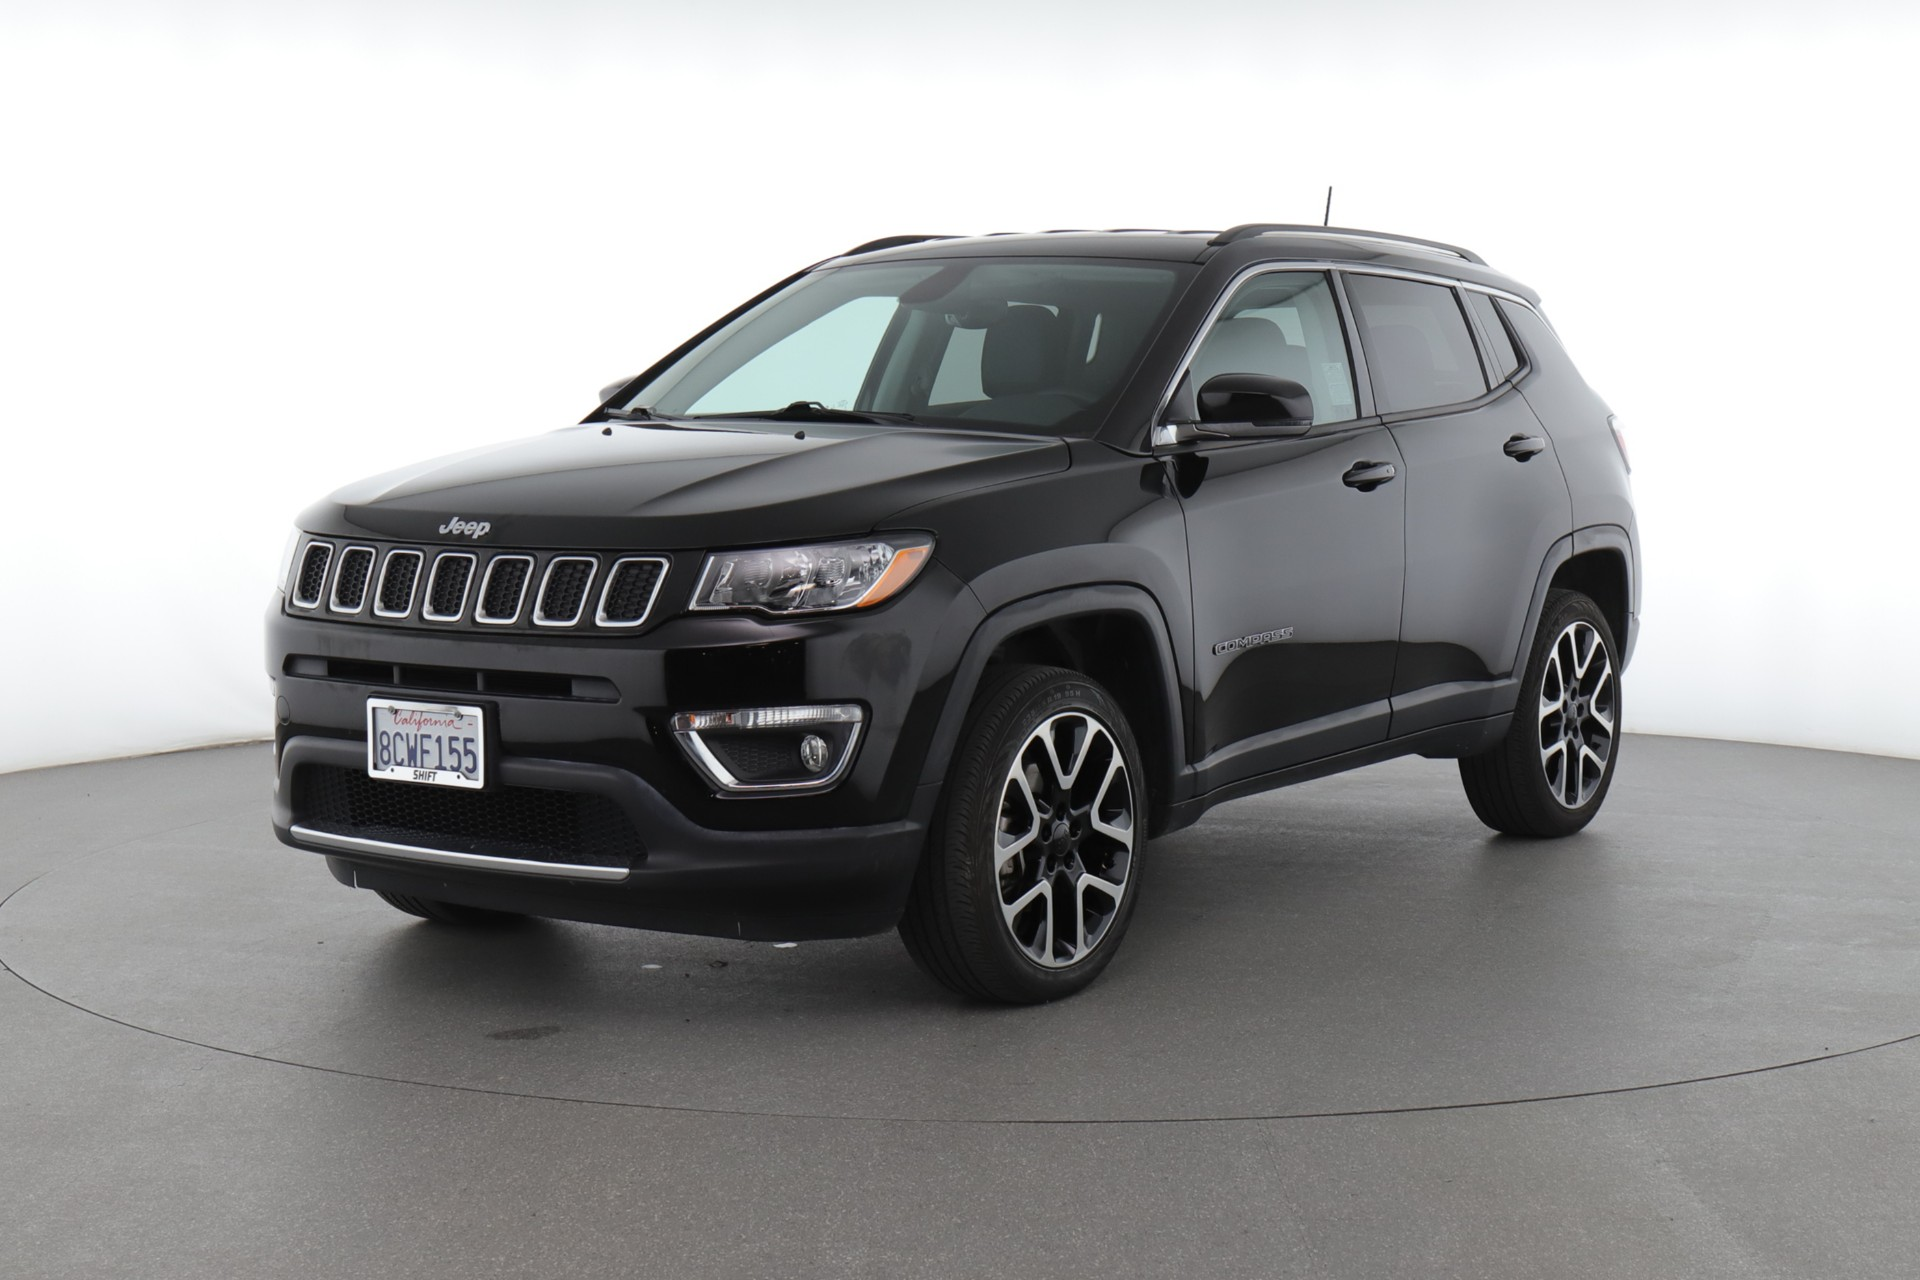 2018 Jeep Compass Limited (from $23,350)